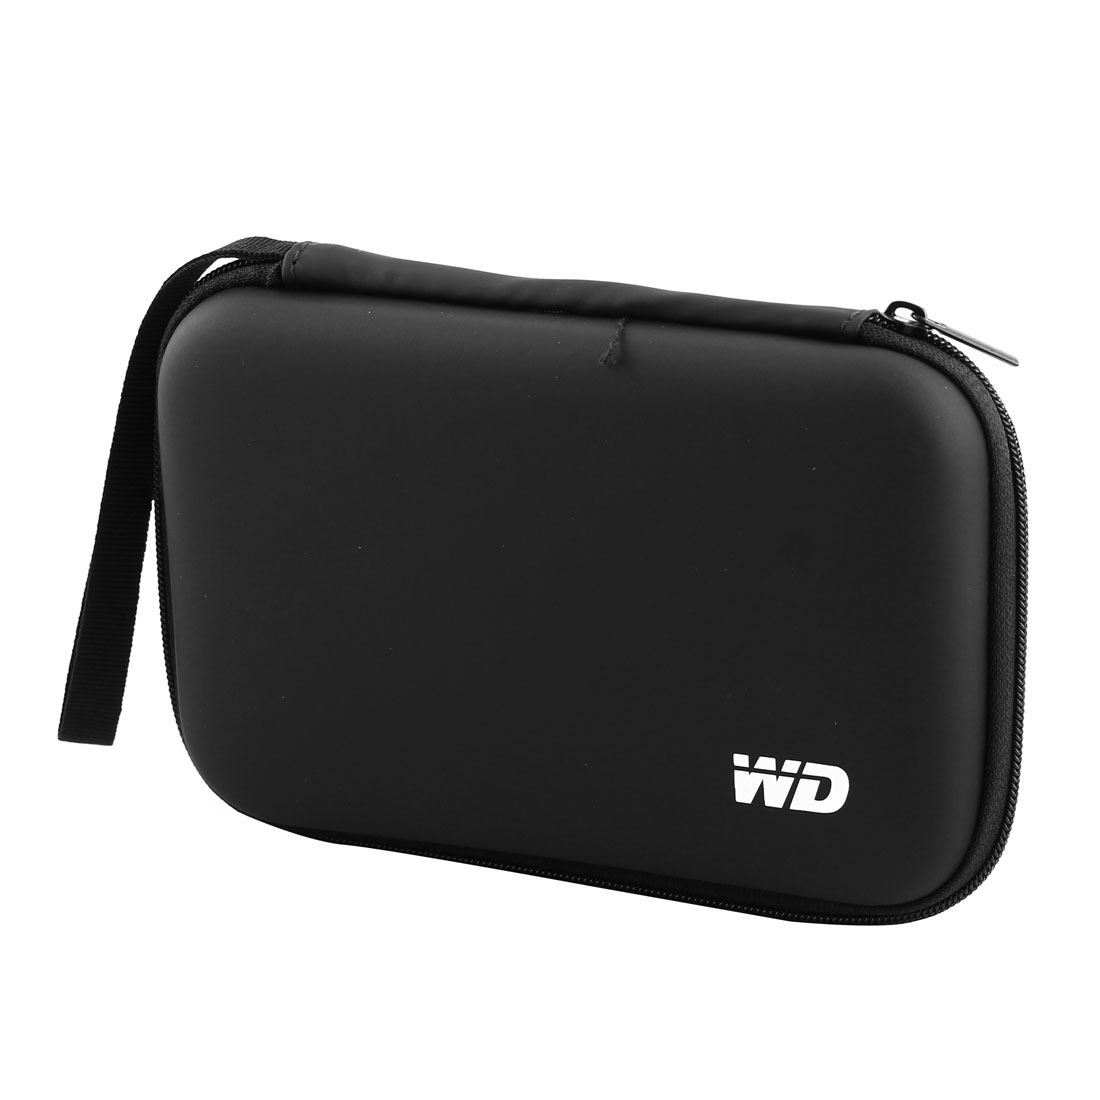 "Portable Hard Disk Drive Shockproof Zipper 2.5"" HDD Hardcase Case Cover Bag Black"